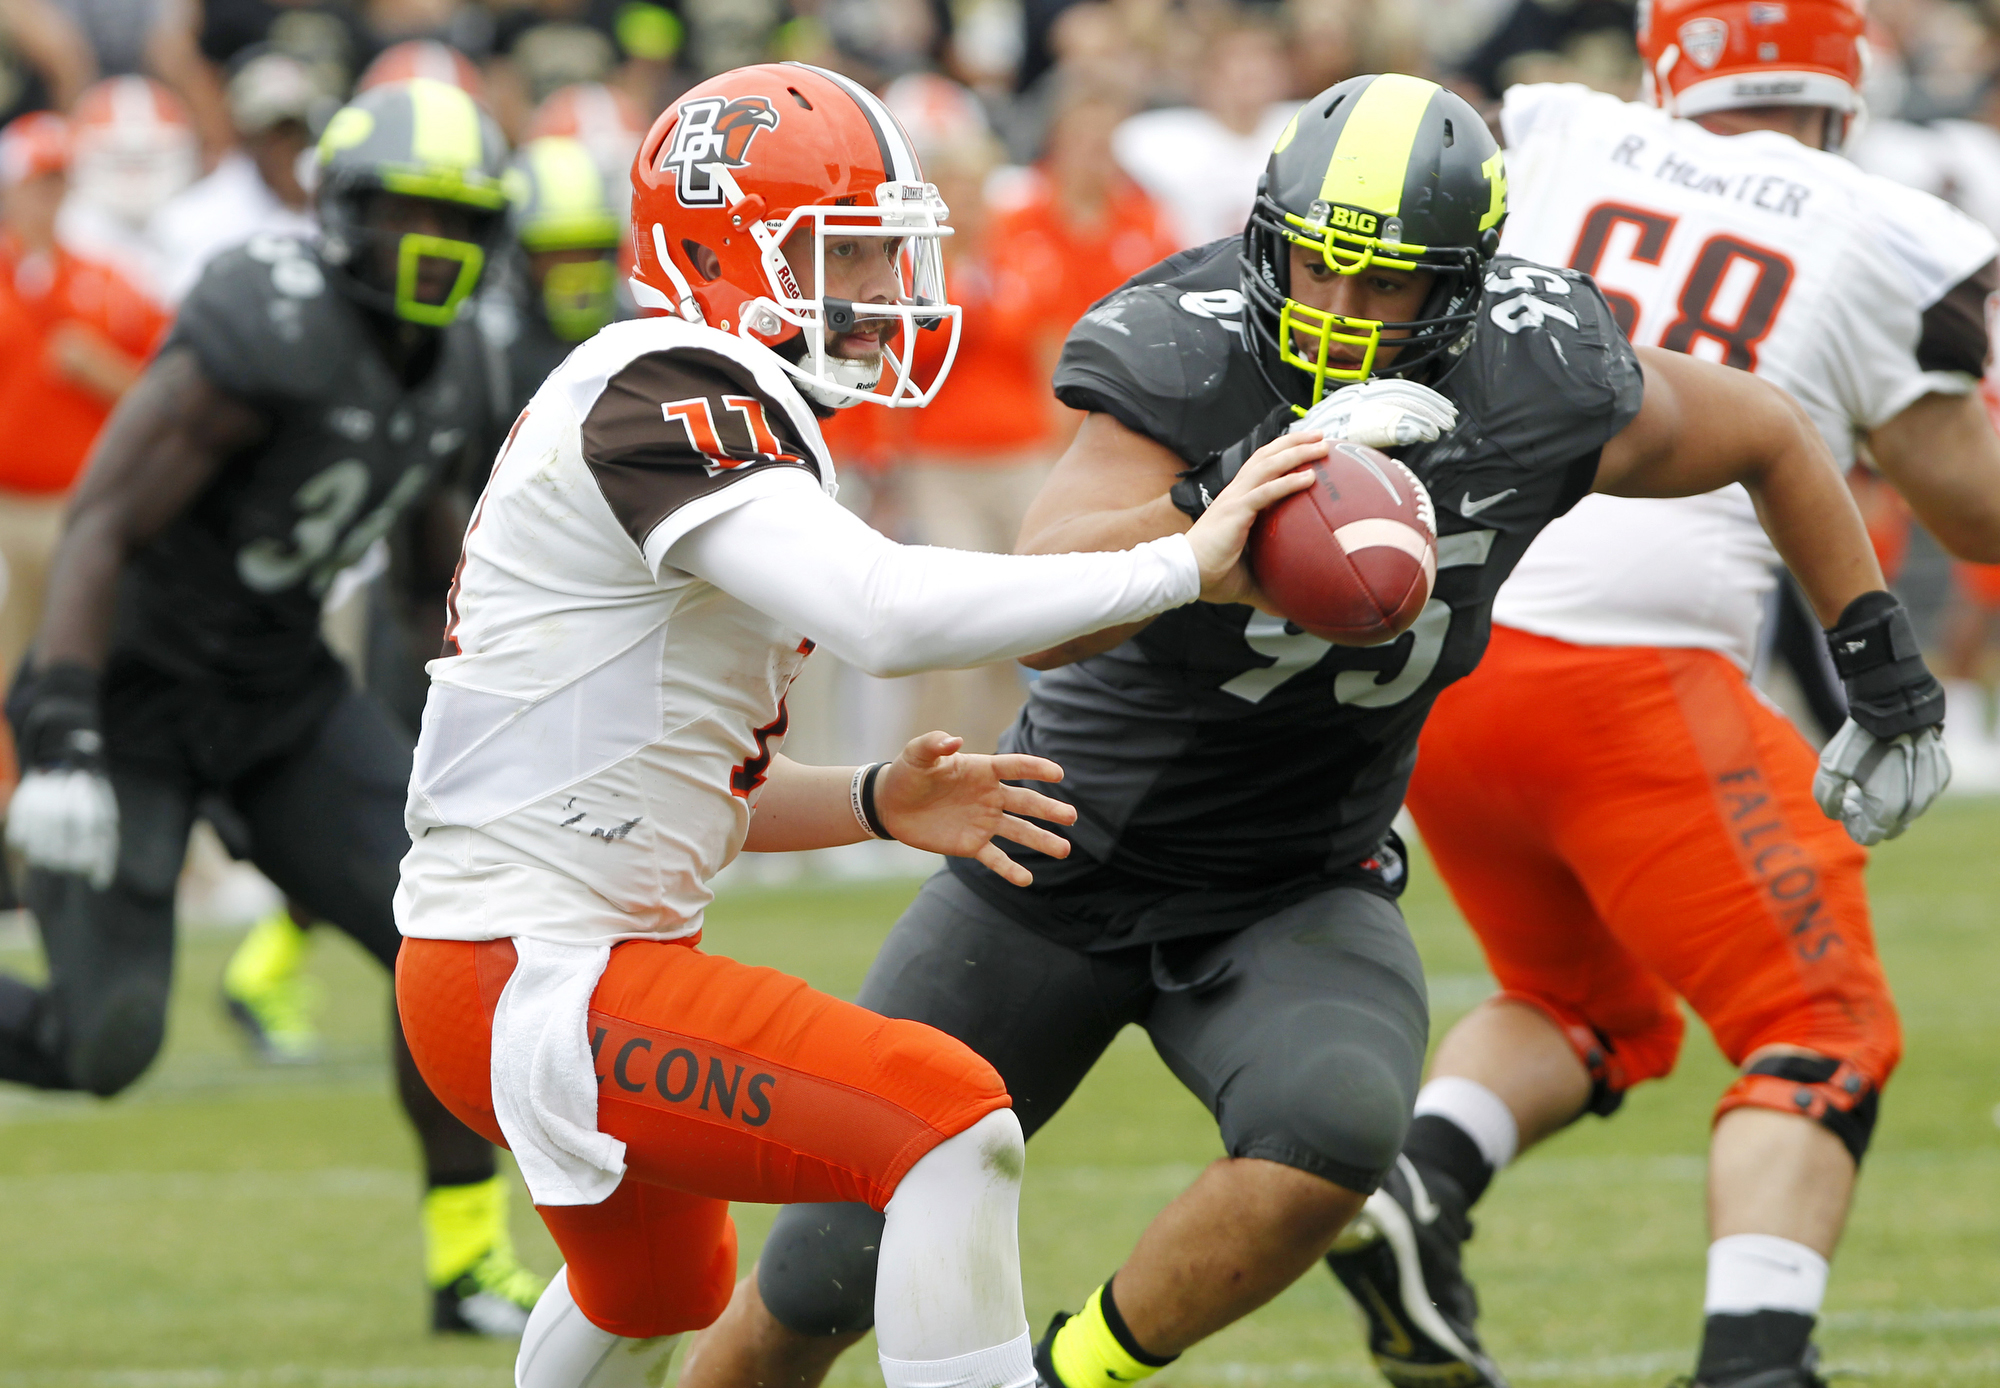 Bowling Green quarterback Matt Johnson (11) takes a shuffle pass ahead of the hit from Purdue's Evan Panfil during an NCAA college football game Saturday, Sept. 26, 2015, in West Lafayette, Ind. (John Terhune /Journal & Courier via AP) MANDATORY CREDIT; N